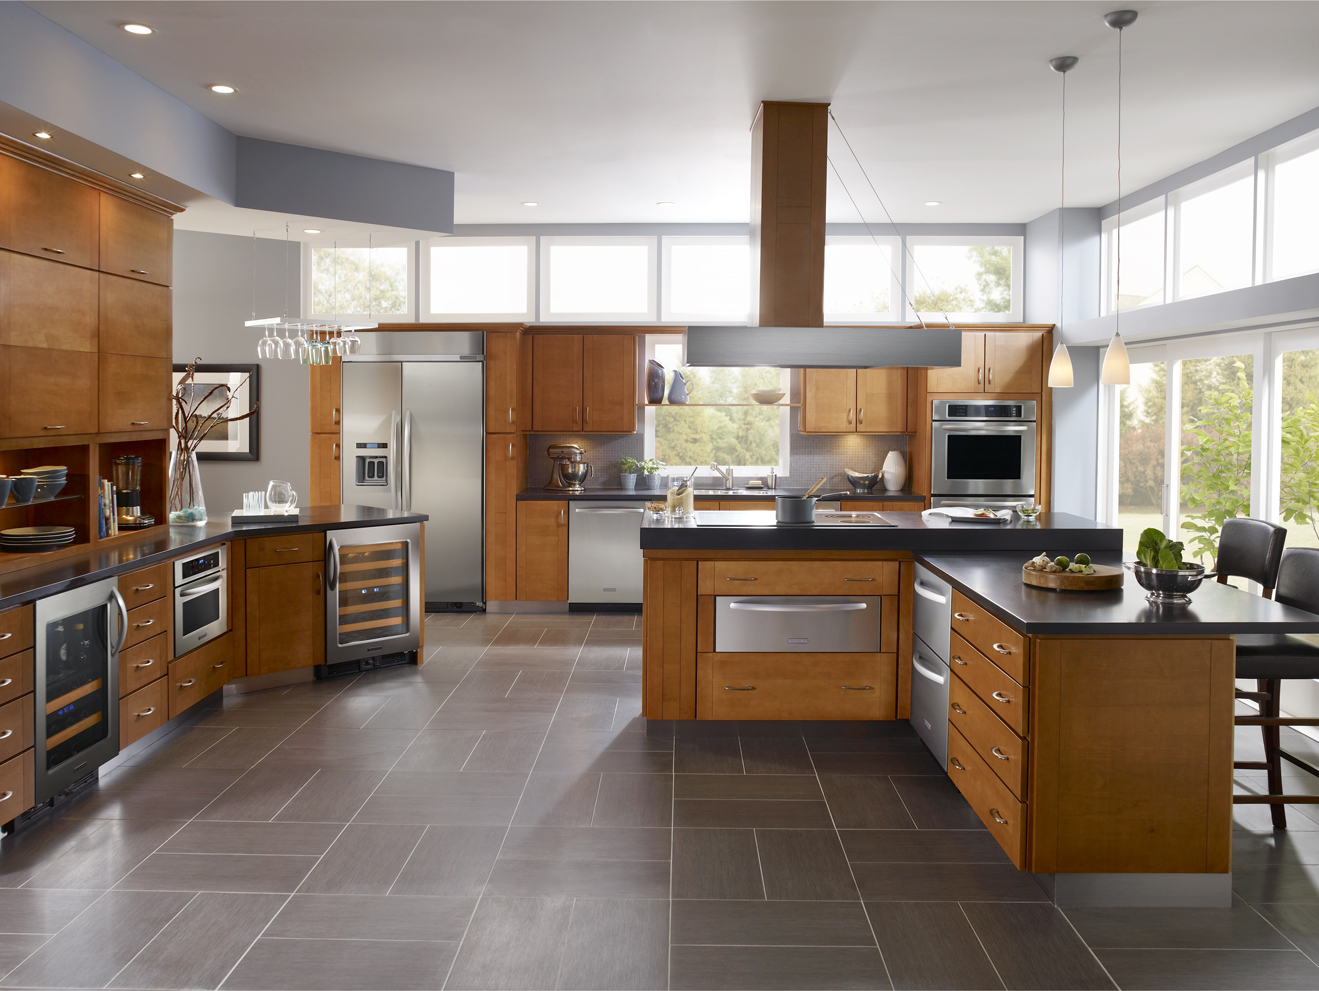 Figure: My DREAM Kitchen Looks Like This, Granted.